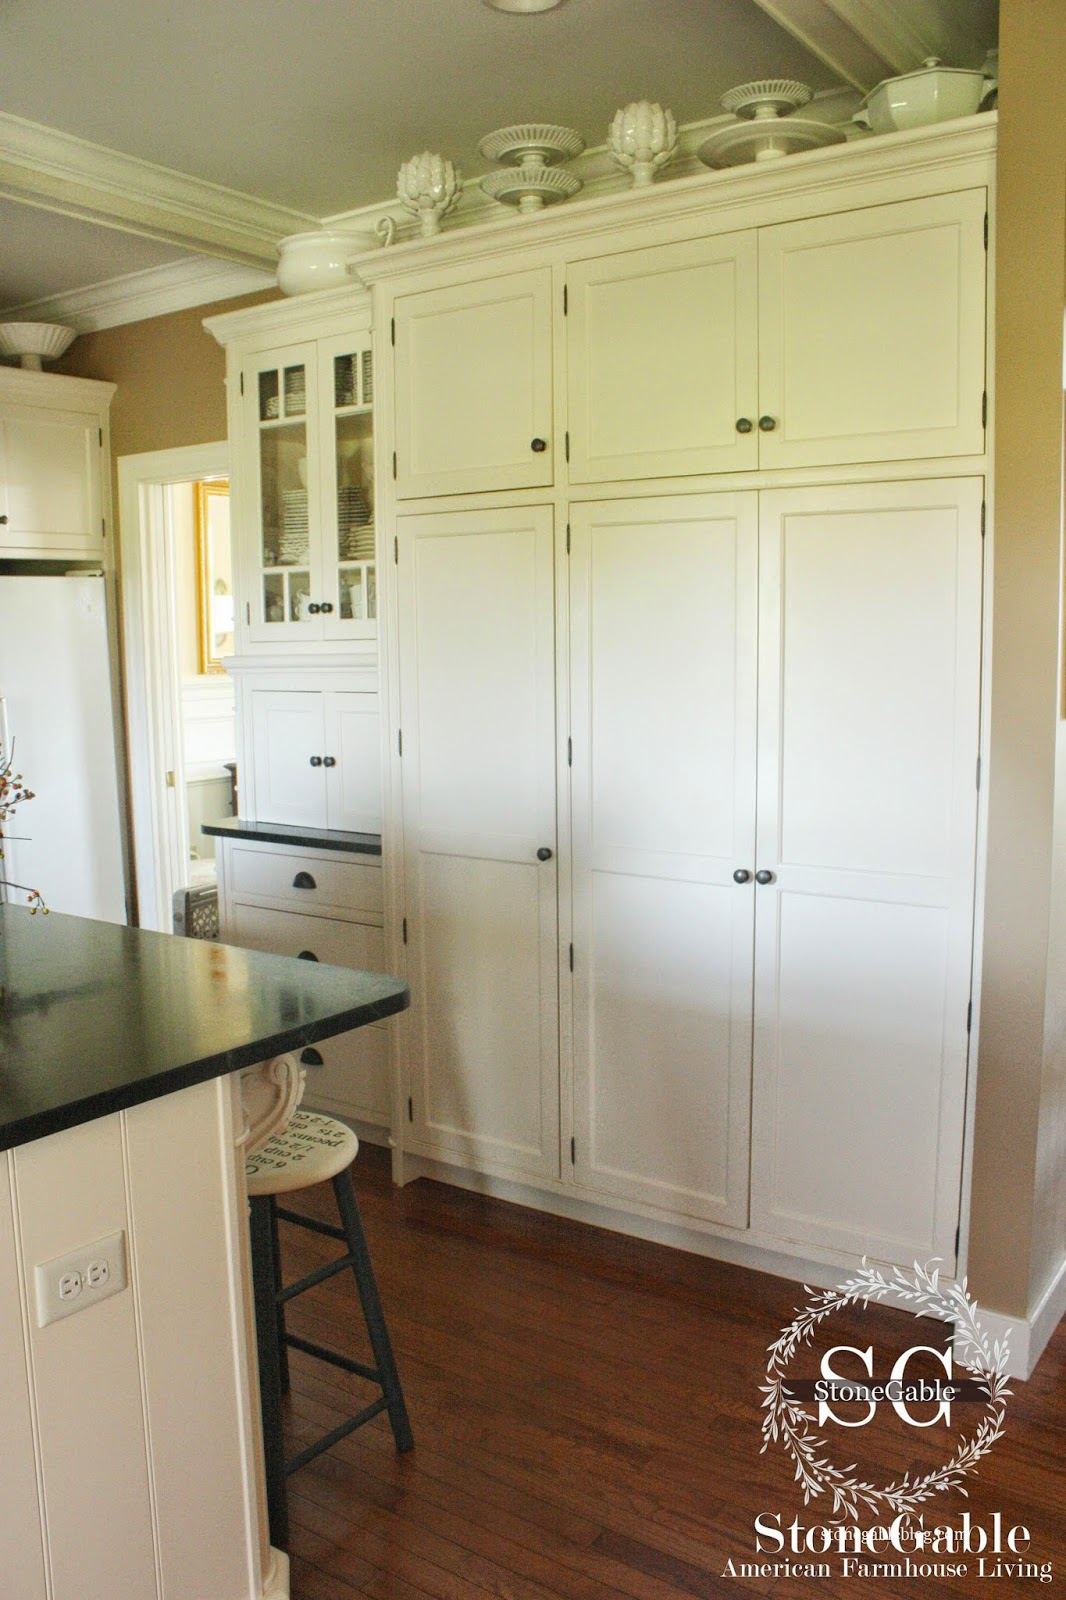 farmhouse kitchen cabinets furniture store 10 elements of a stonegable